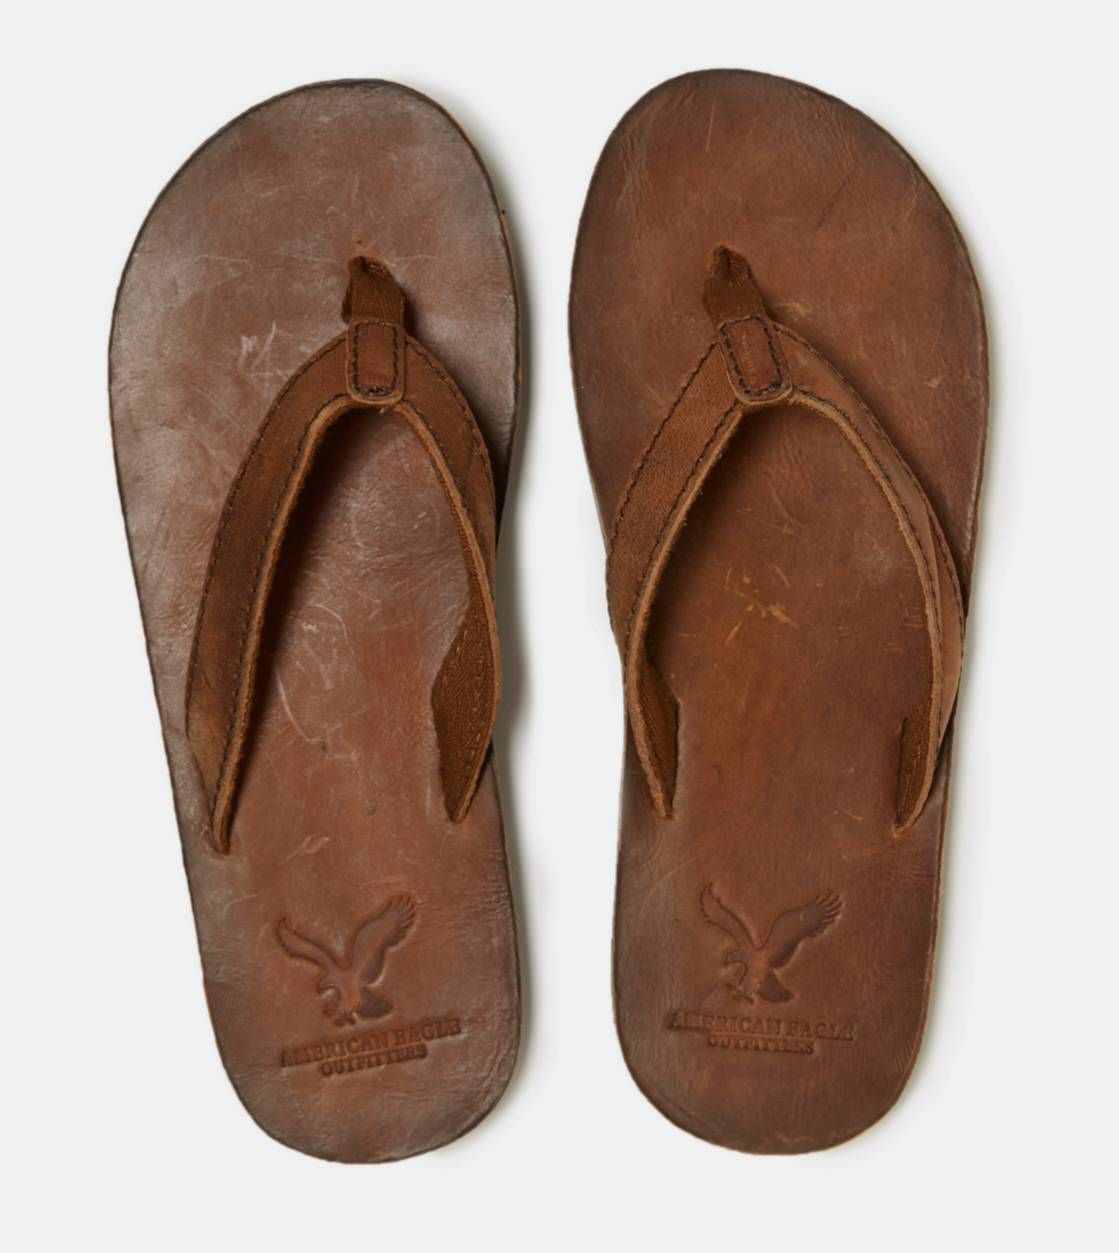 d393c0a6462b AEO Leather Flip-Flop Style  1215-6176